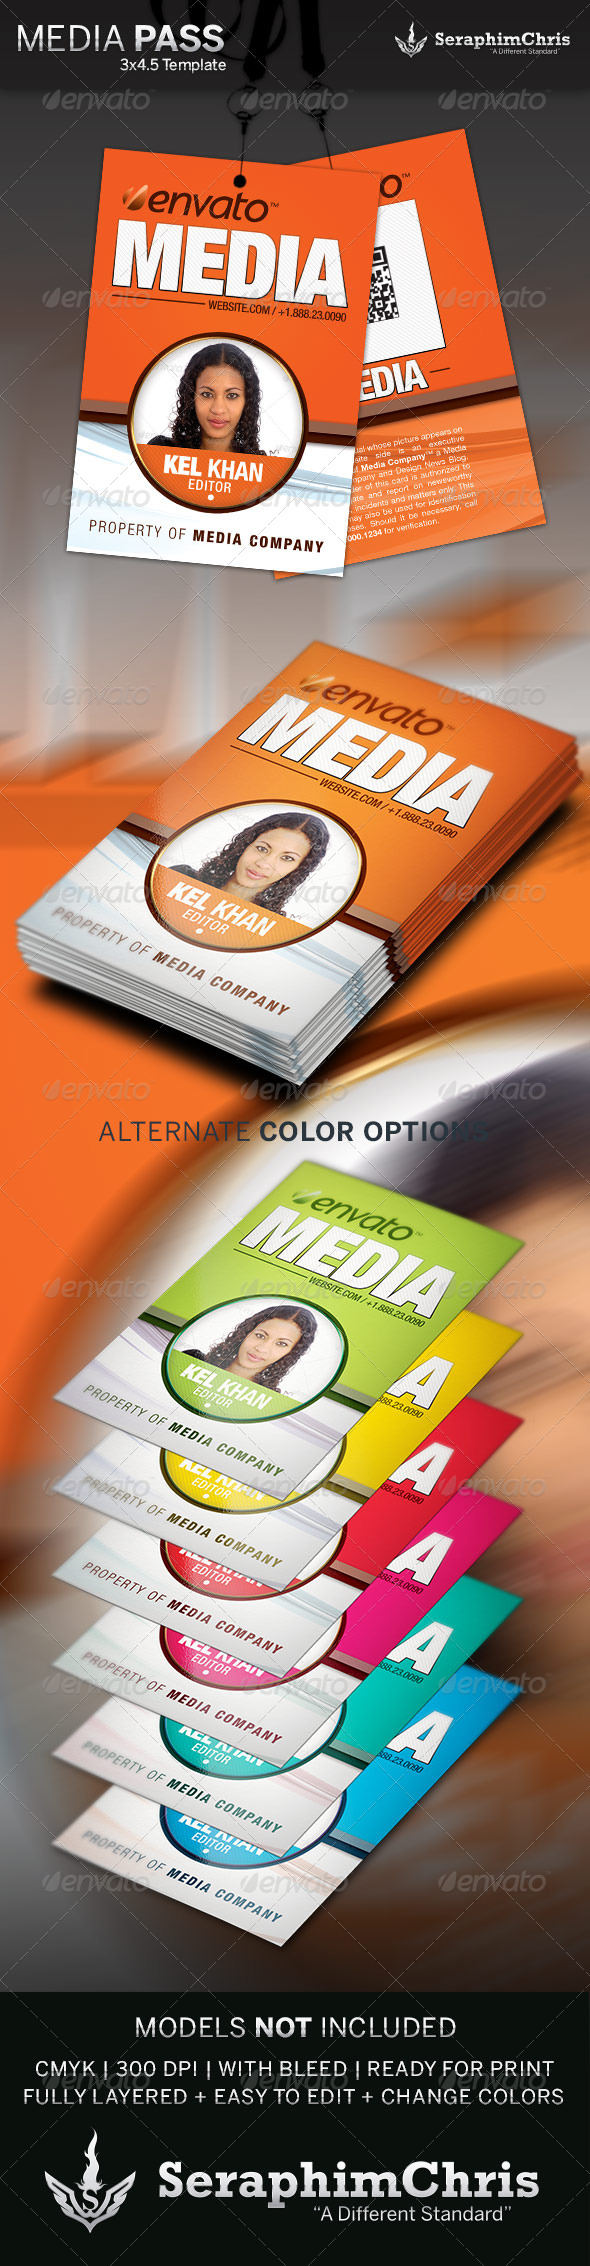 GraphicRiver Media Pass Template 4266678